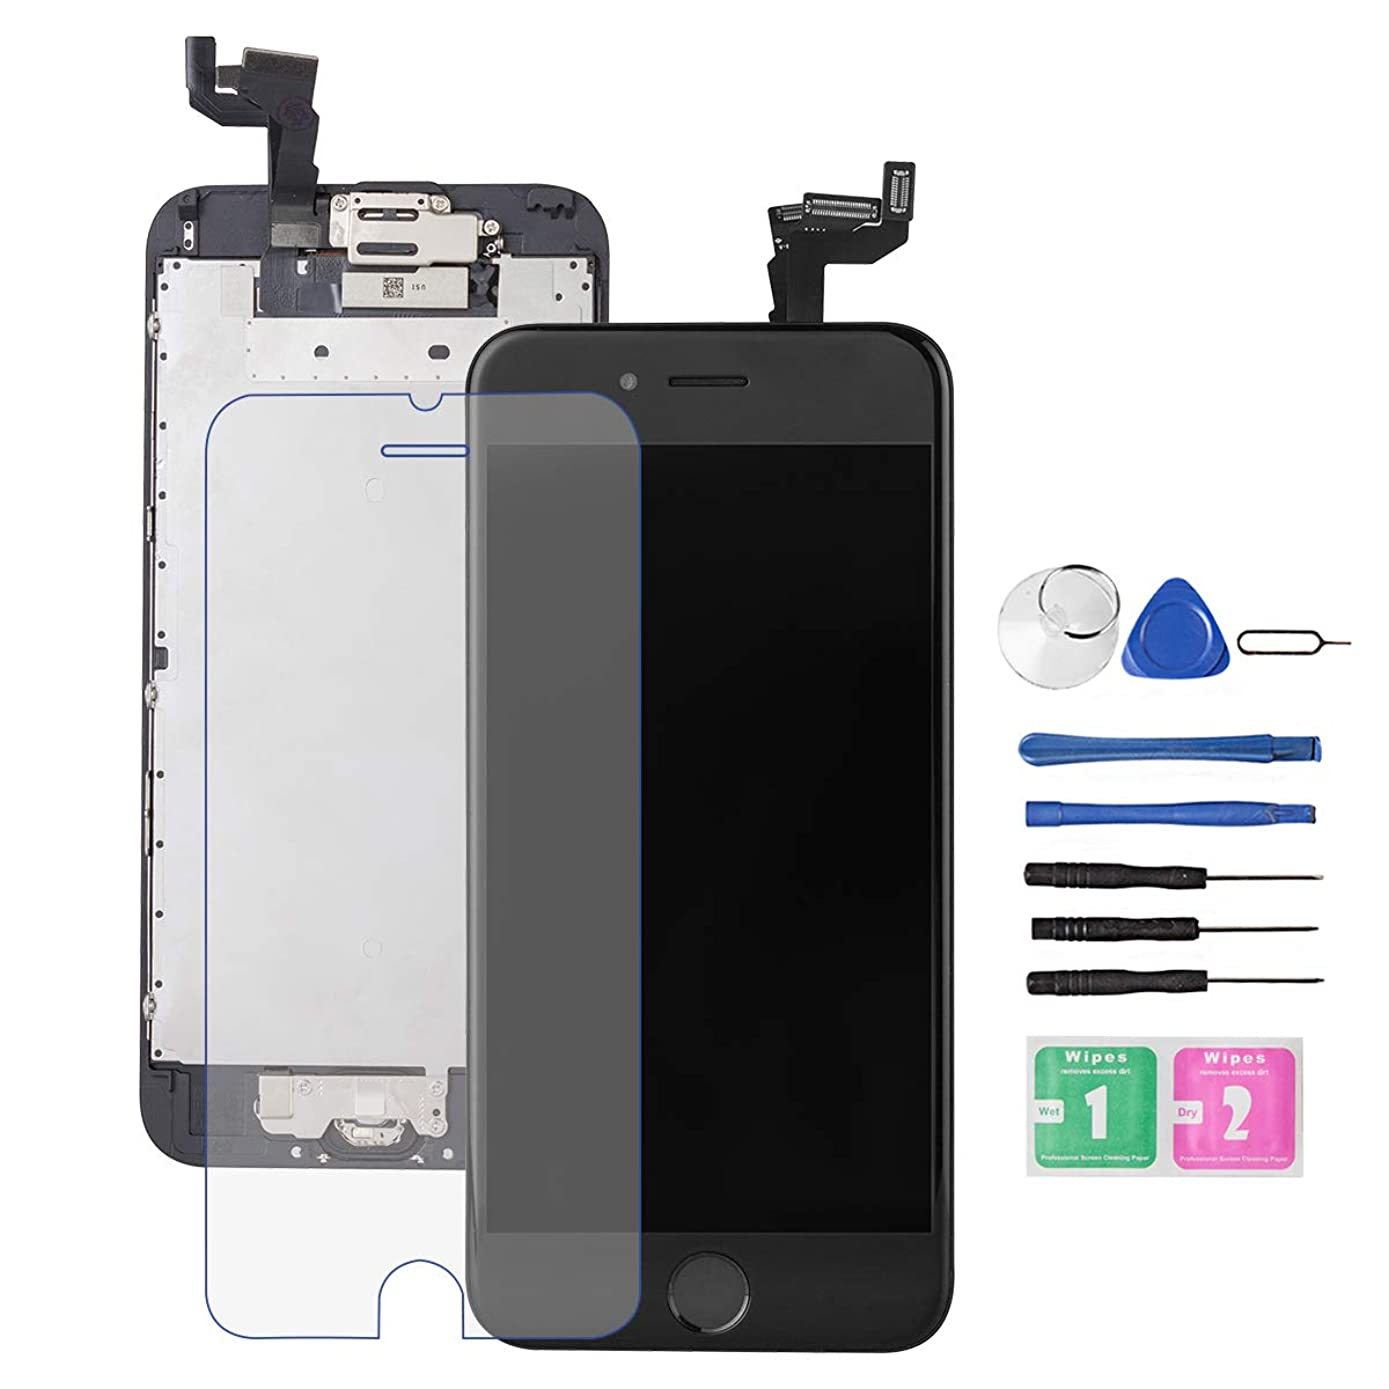 for iPhone 6S Screen Replacement Black,Drscreen LCD Touch Digitizer Complete Display for A1586, A1589, A1549, ith Home Button Proximity Sensor Ear Speaker Front Camera Screen Protector and Repair Tool